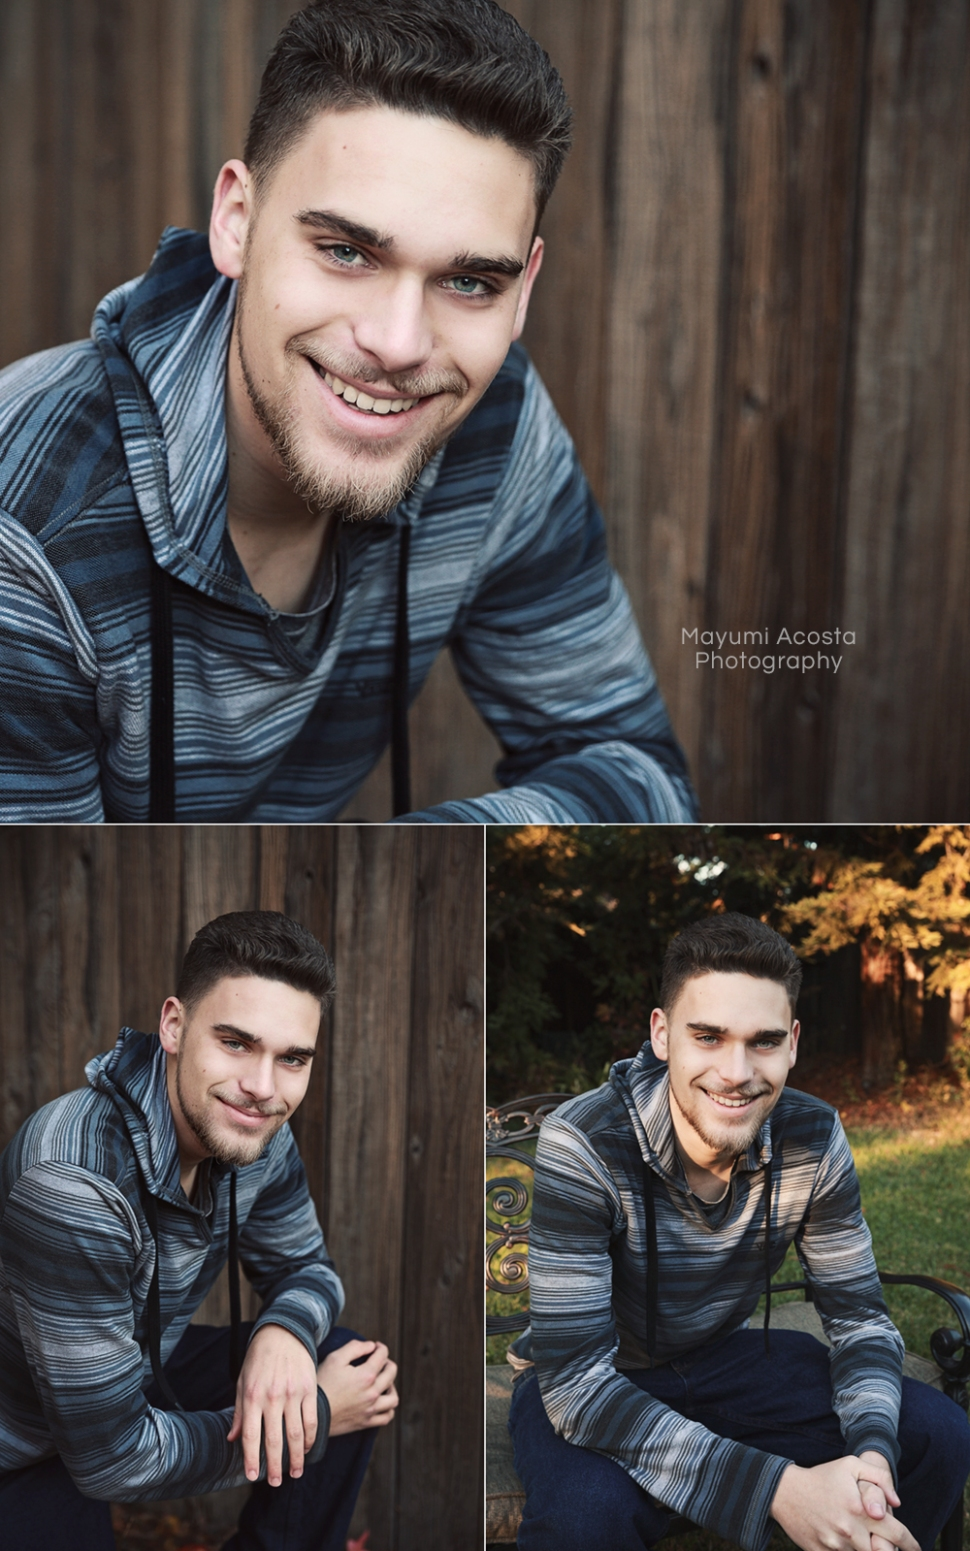 High School Senior Photography, Sacramento Photographer, Sacramento Senior Portraits, Sacramento Senior Photographer, High School Senior Photoshoot, Sacramento male High school senior, Granite Bay High School, Granite Bay California